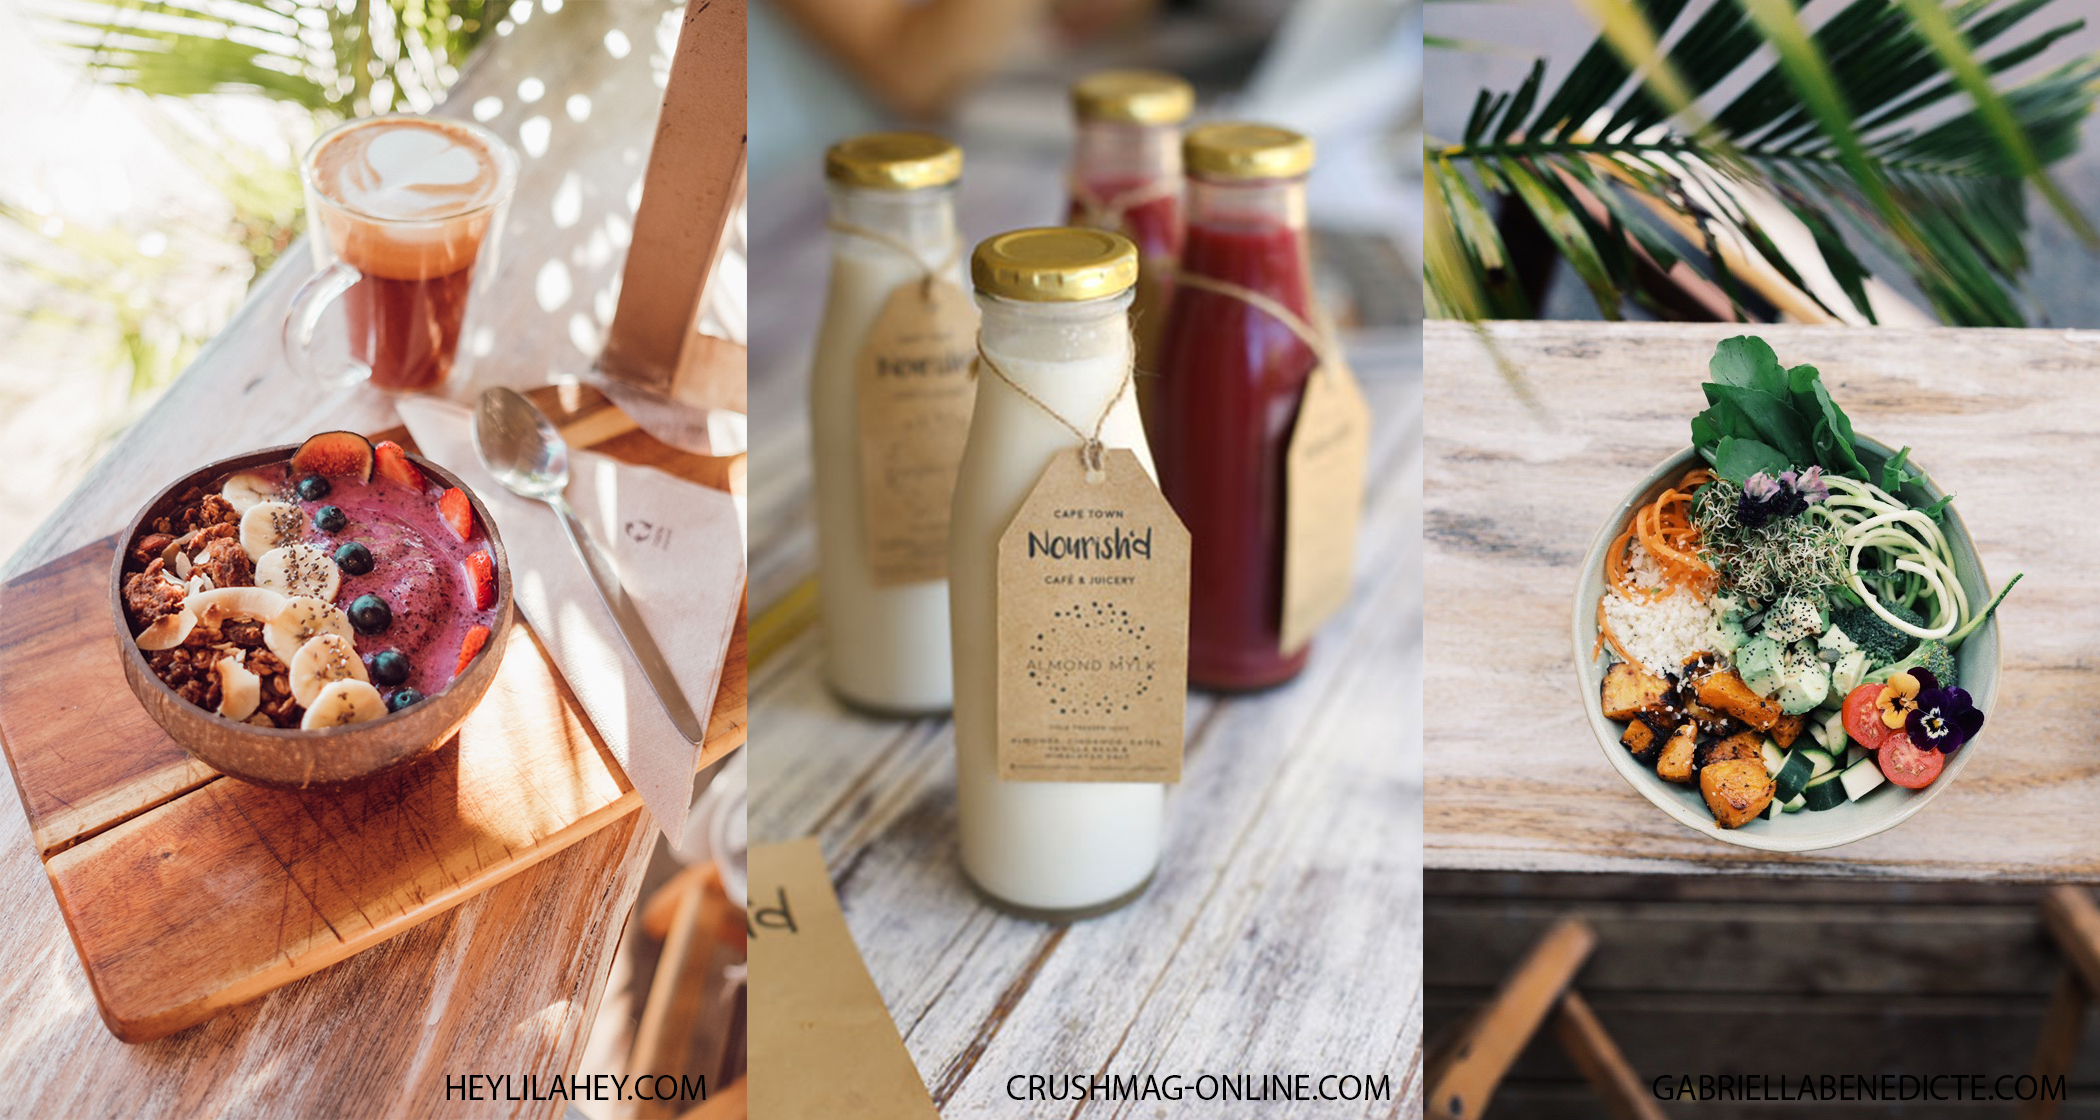 Nourish'd Café and Juicery